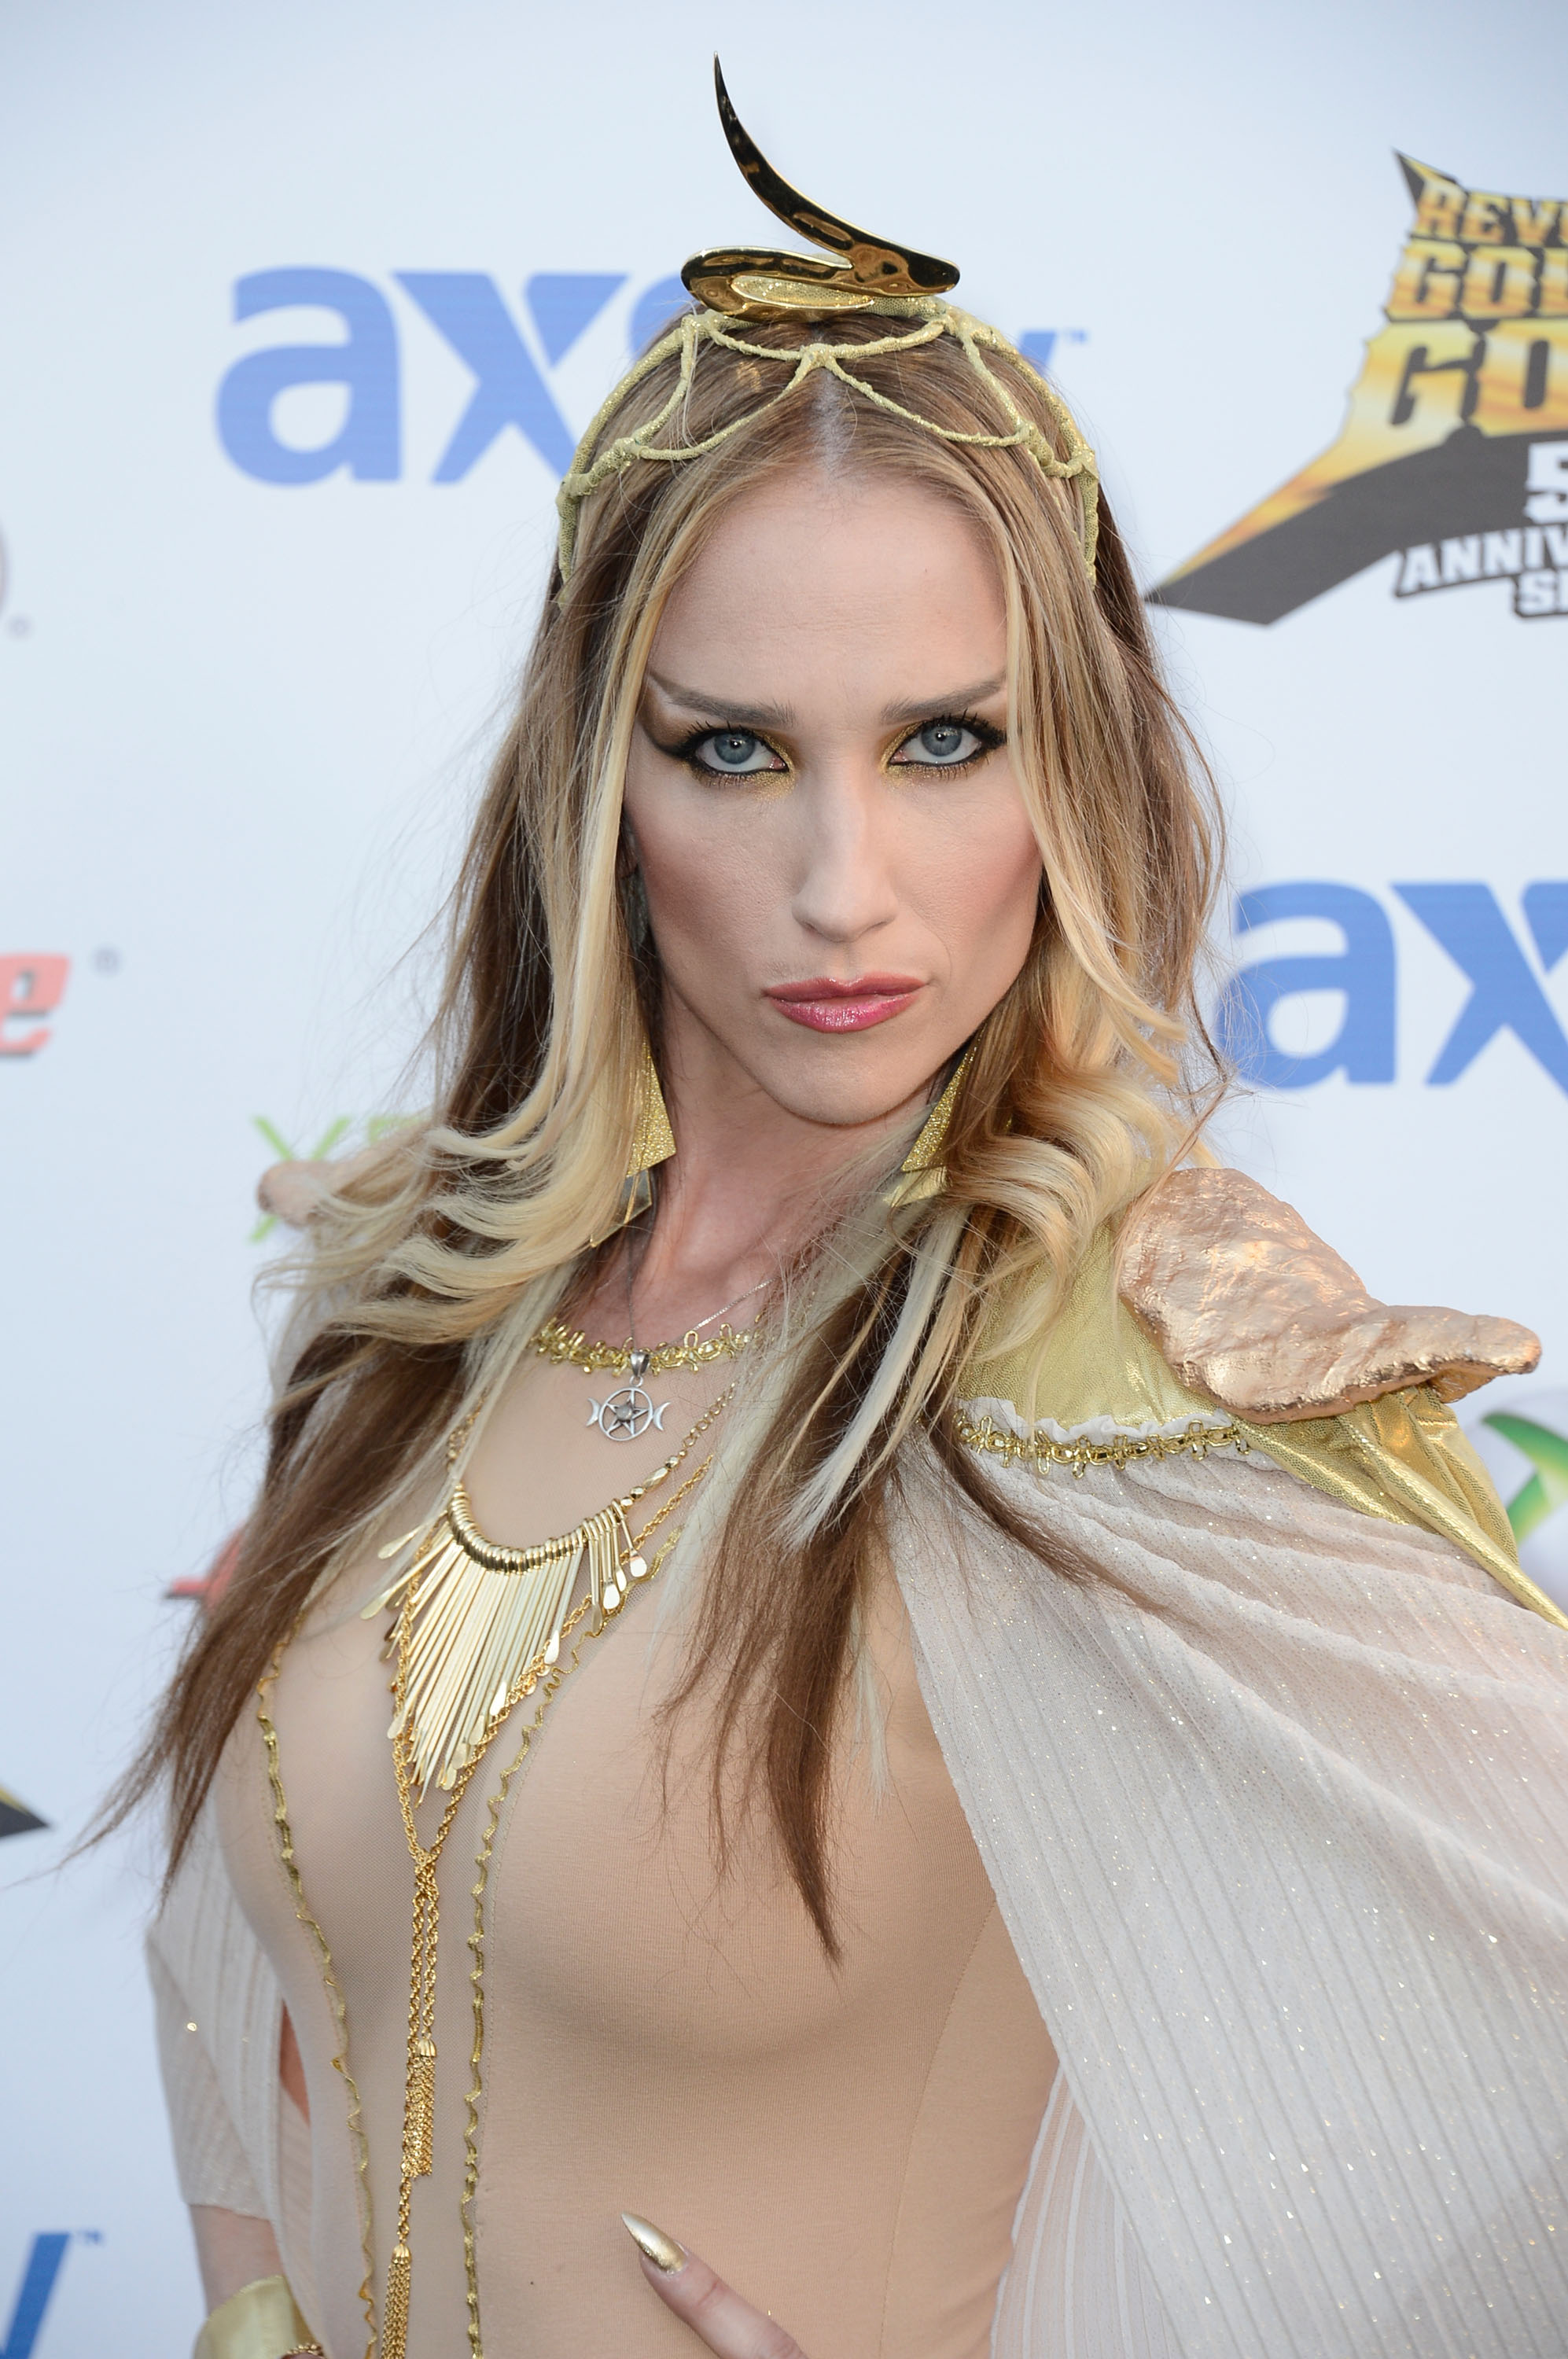 Musician Jill Janus arrives at the 5th Annual Revolver Golden Gods Award Show at Club Nokia on May 2, 2013 in Los Angeles, California.